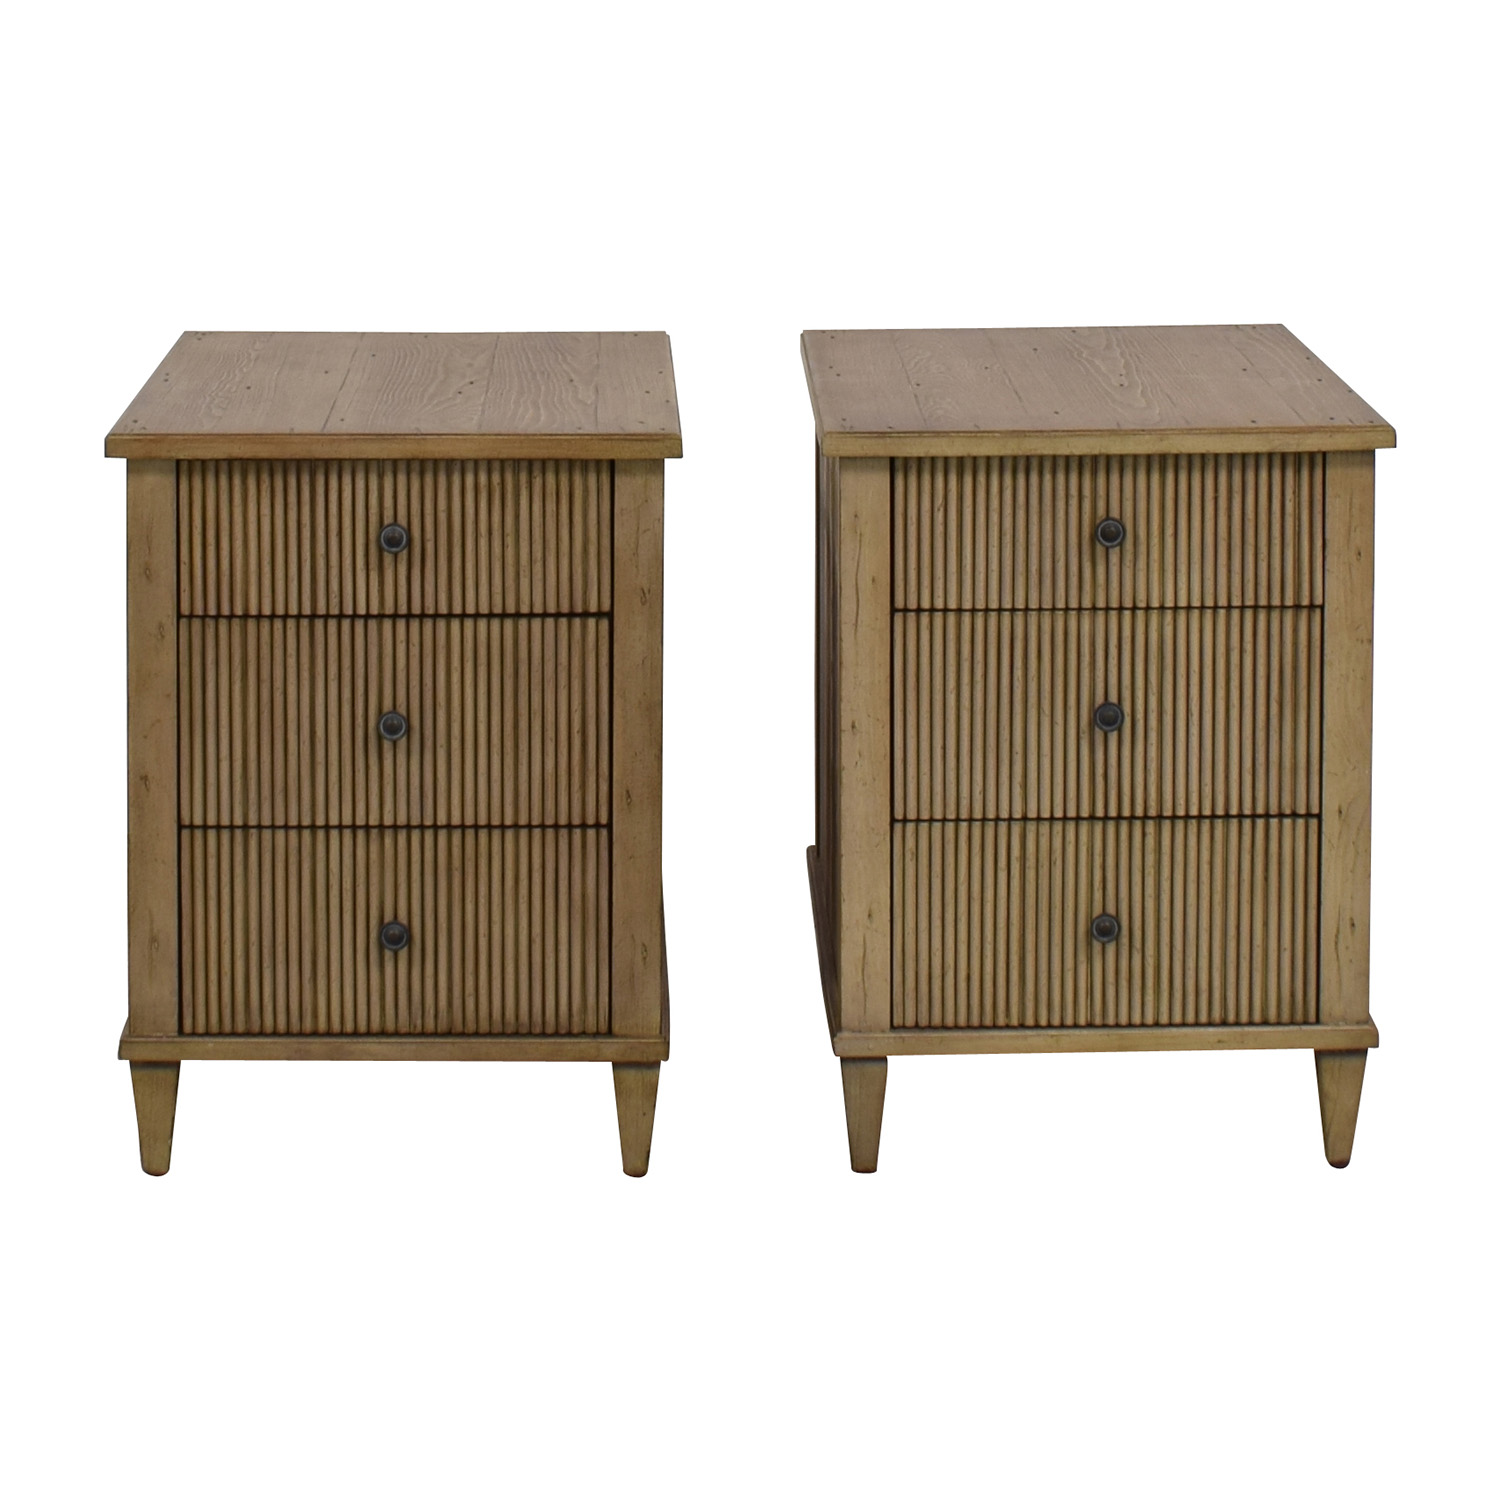 Ethan Allen Used Furniture >> Kaiyo Quality Used Furniture